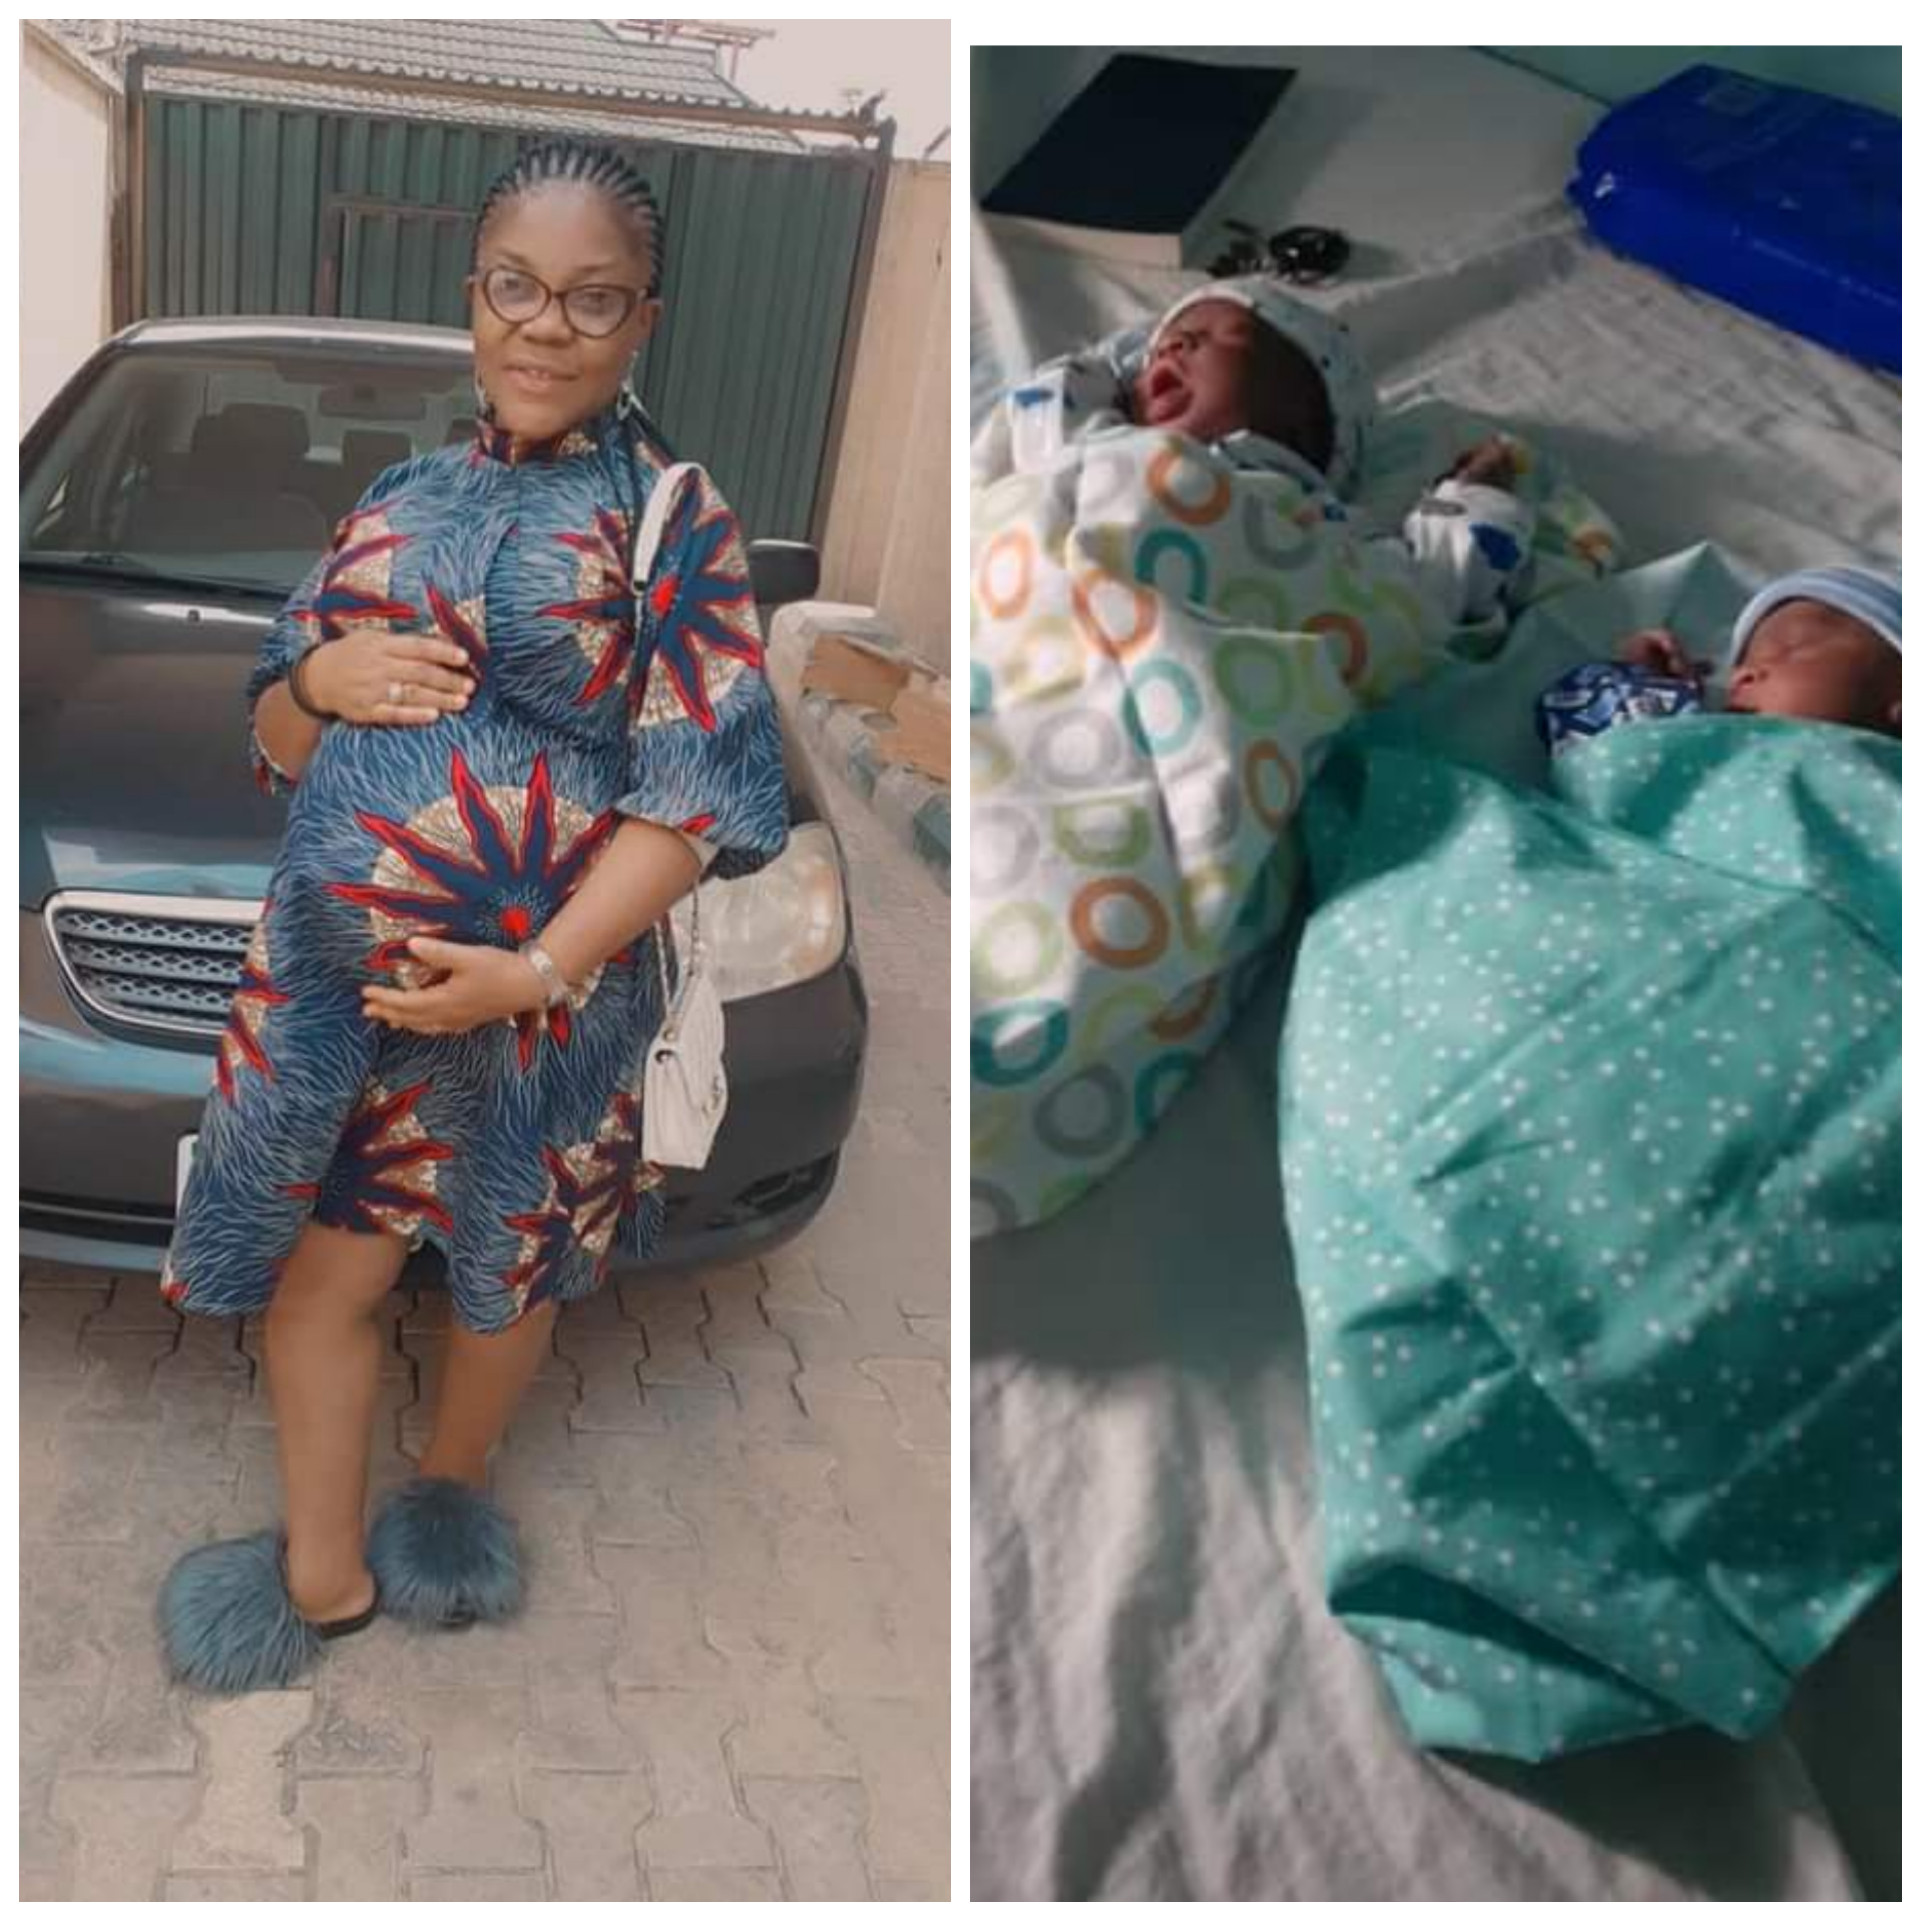 NIGERIAN WOMAN GIVES BIRTH TO TWINS AFTER 10 YEARS OF MARRIAGE (PHOTOS)